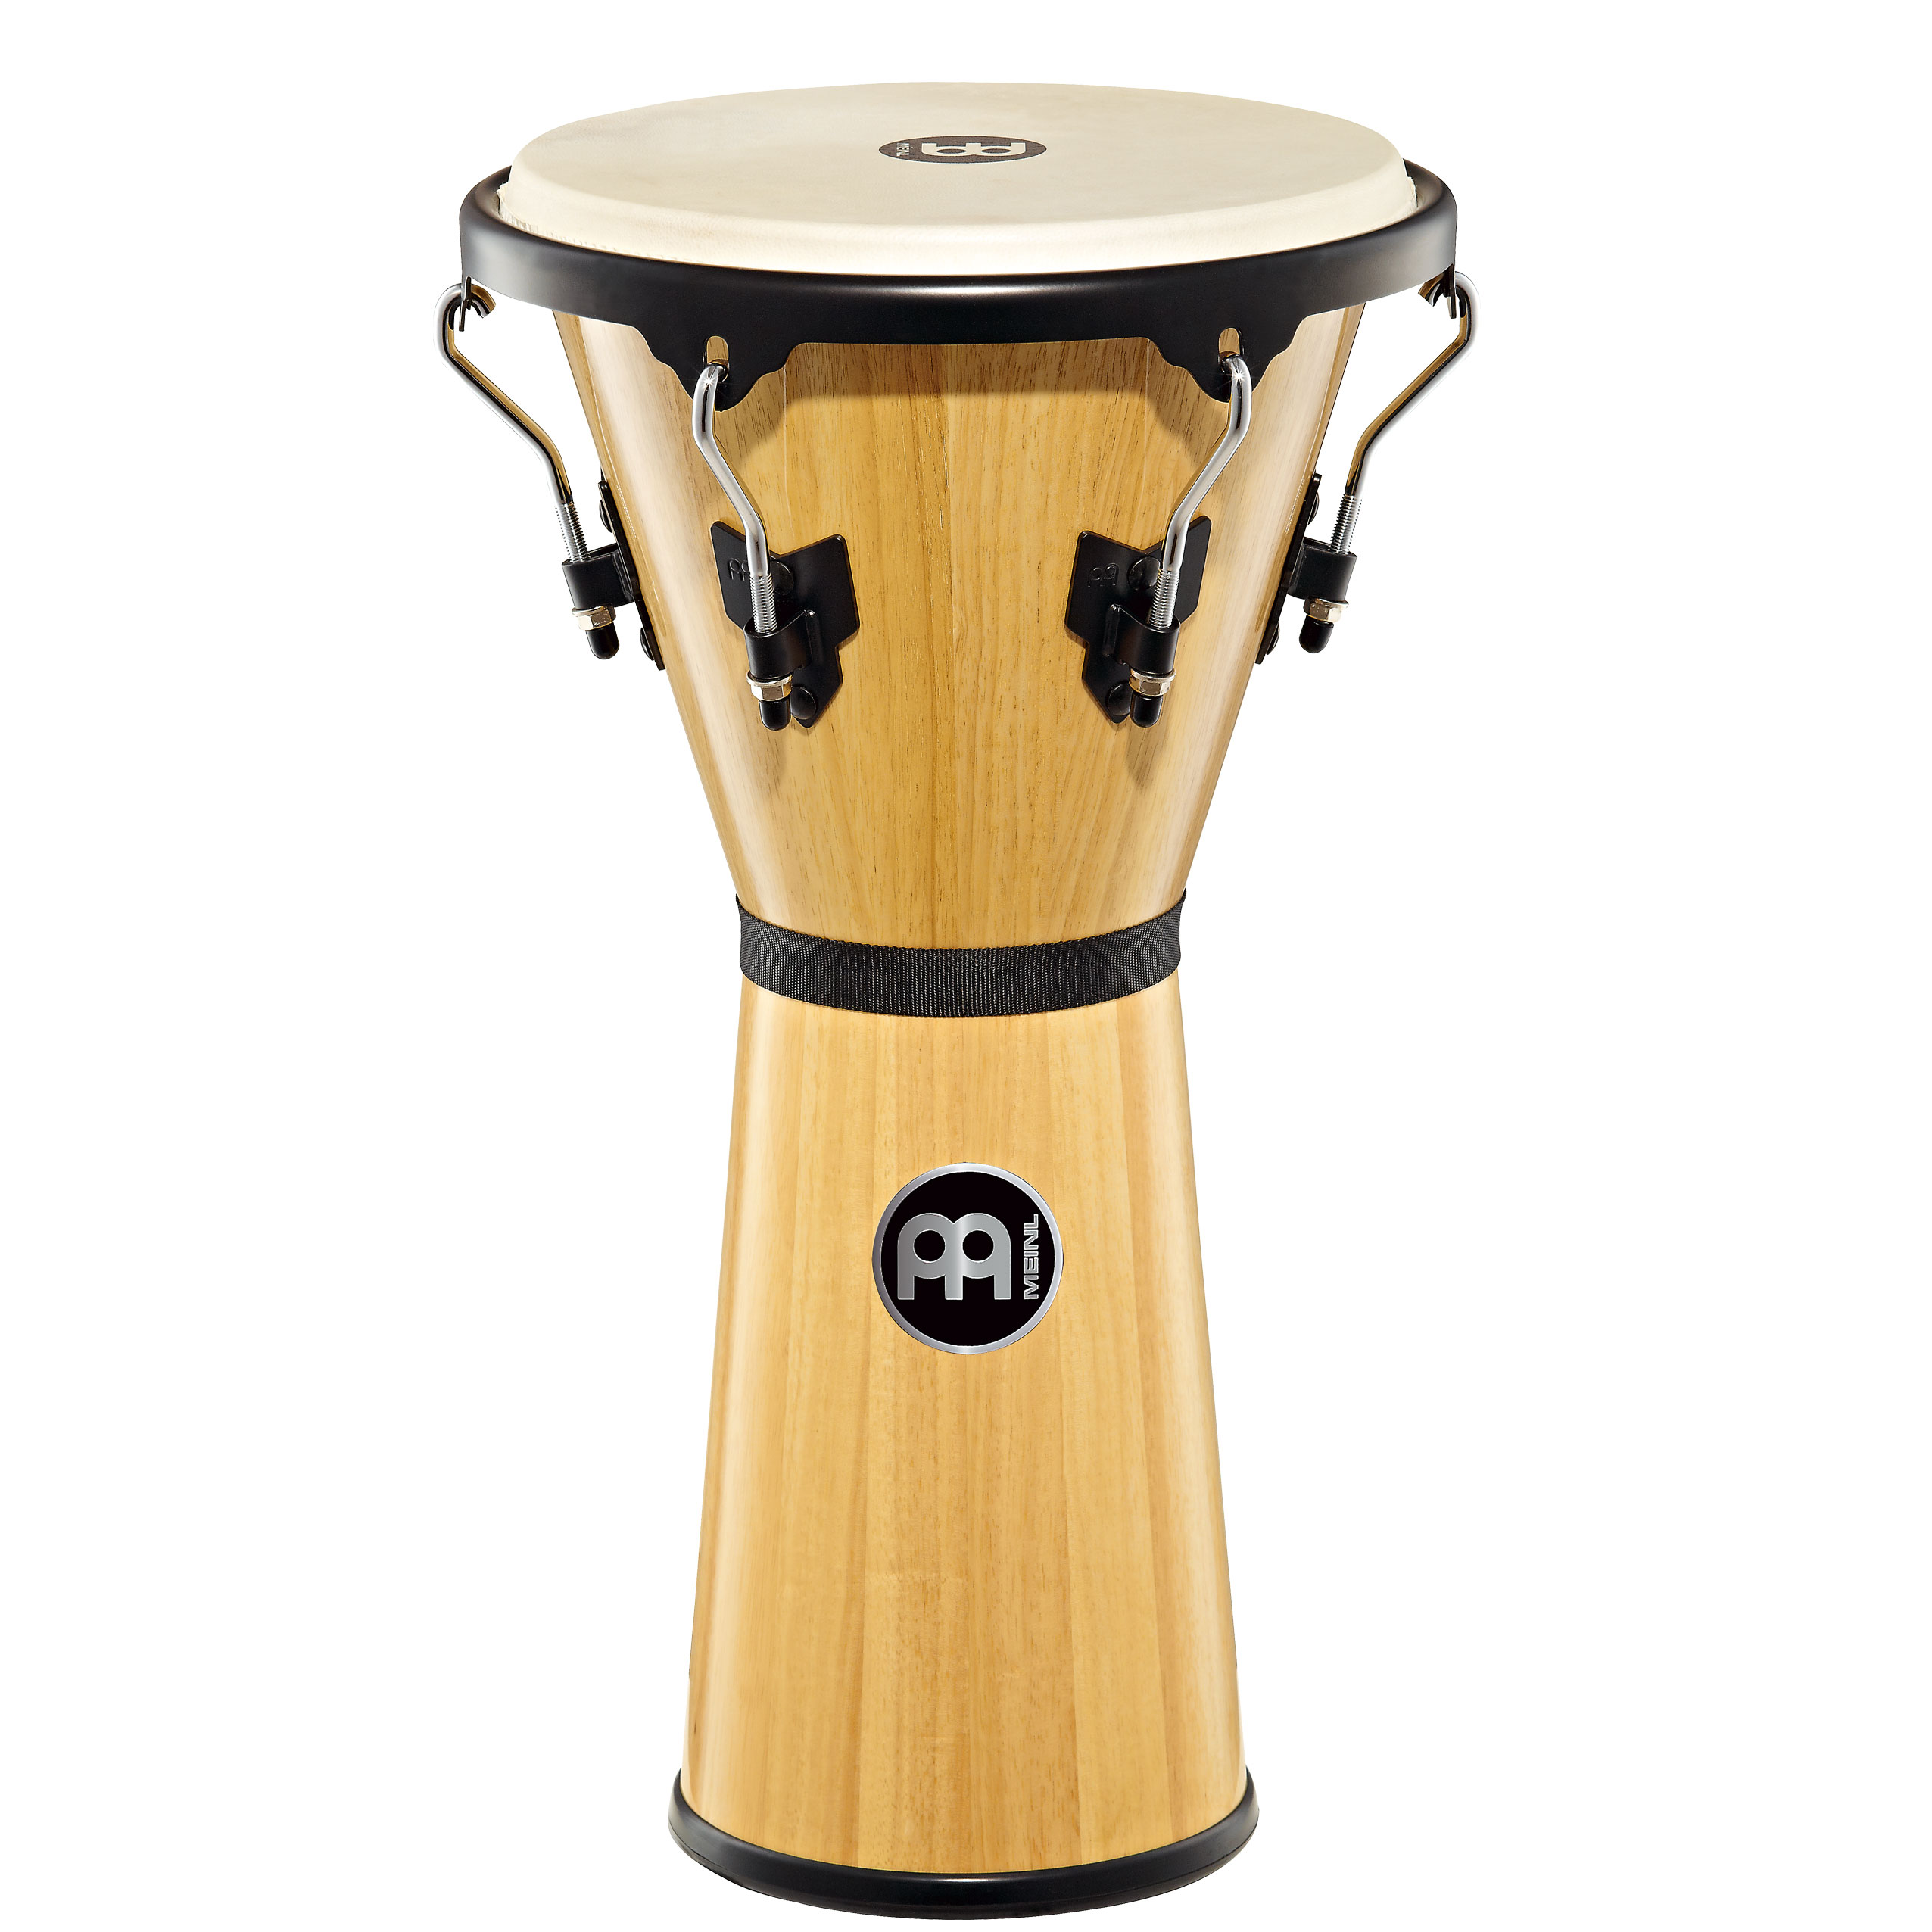 "Meinl 12 1/2"" Headliner Series Wood Djembe in Natural Finish"